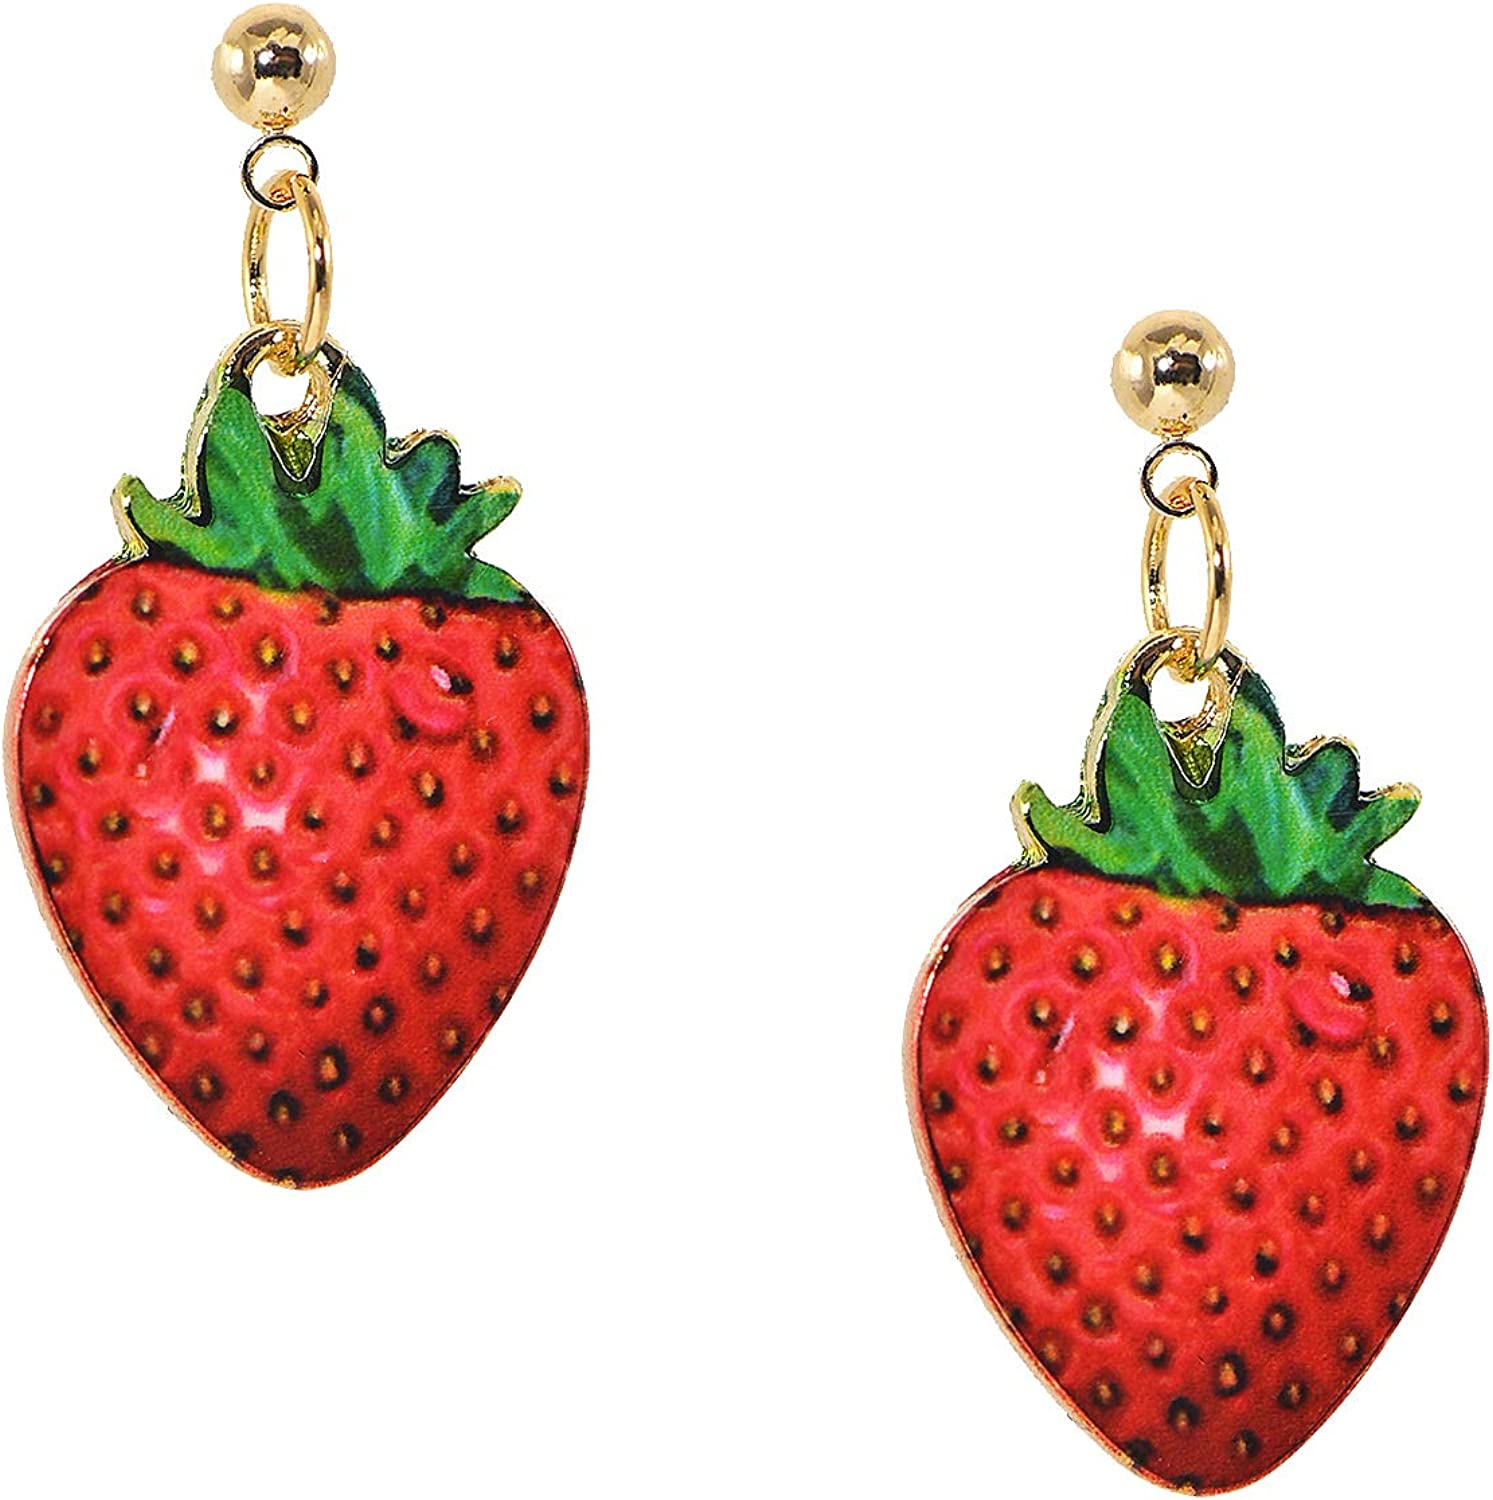 ChelseachicNYC Whimsical Fruit and Food Jewelry